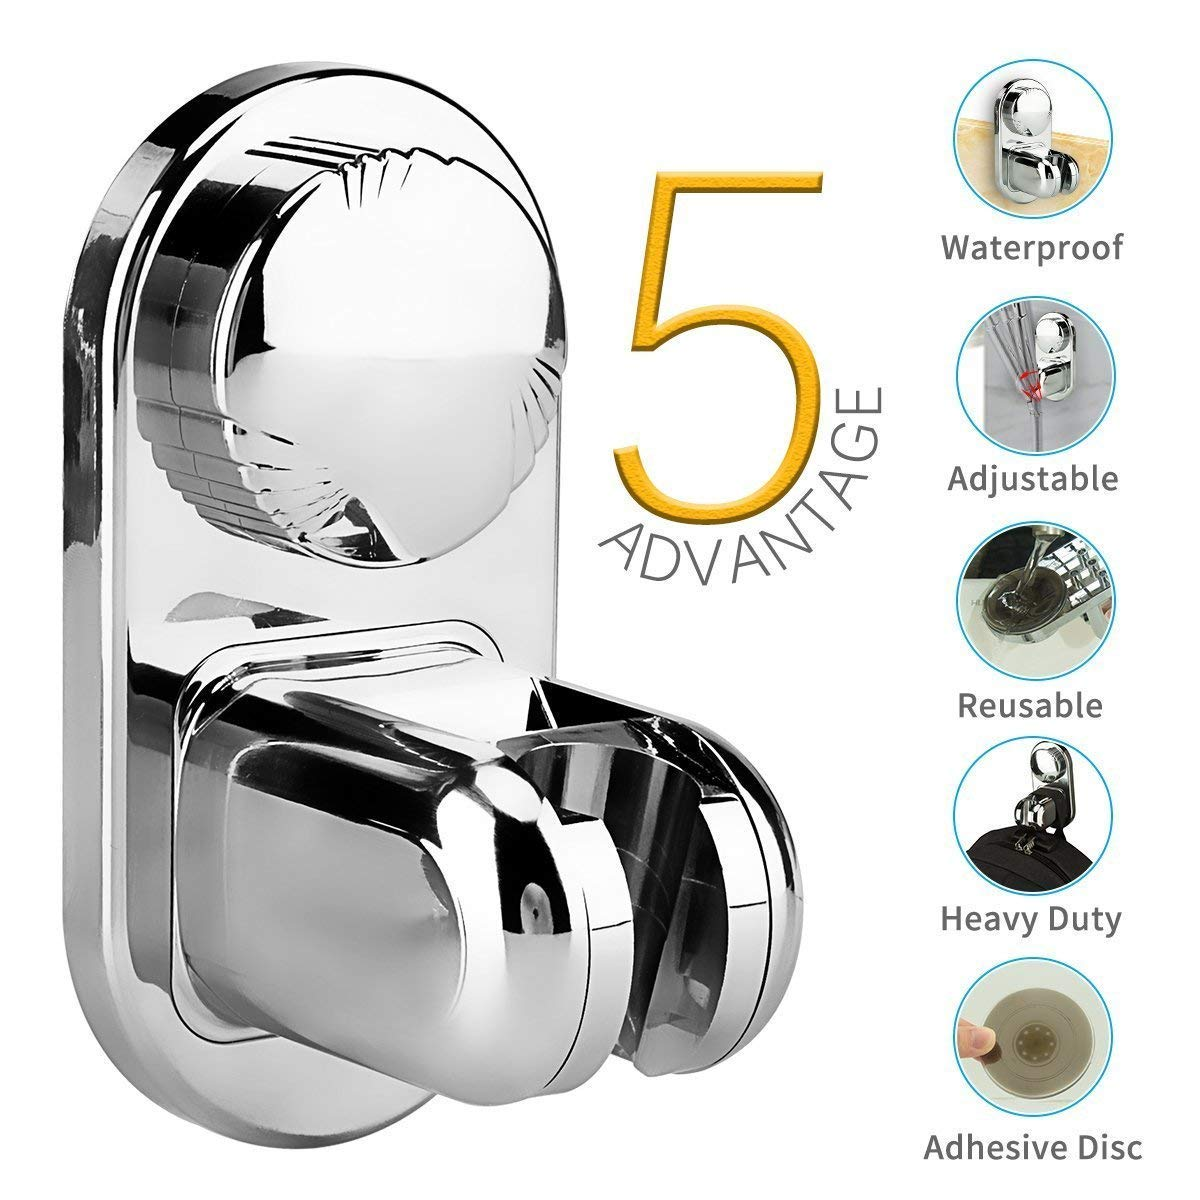 Vacuum Suction Cup Shower HeadHolder Removable Mount Wall Stand Bracket Showerhead, Reusable Adjustable with Adhesive Sucking Disc for Bathroom by VANVENE